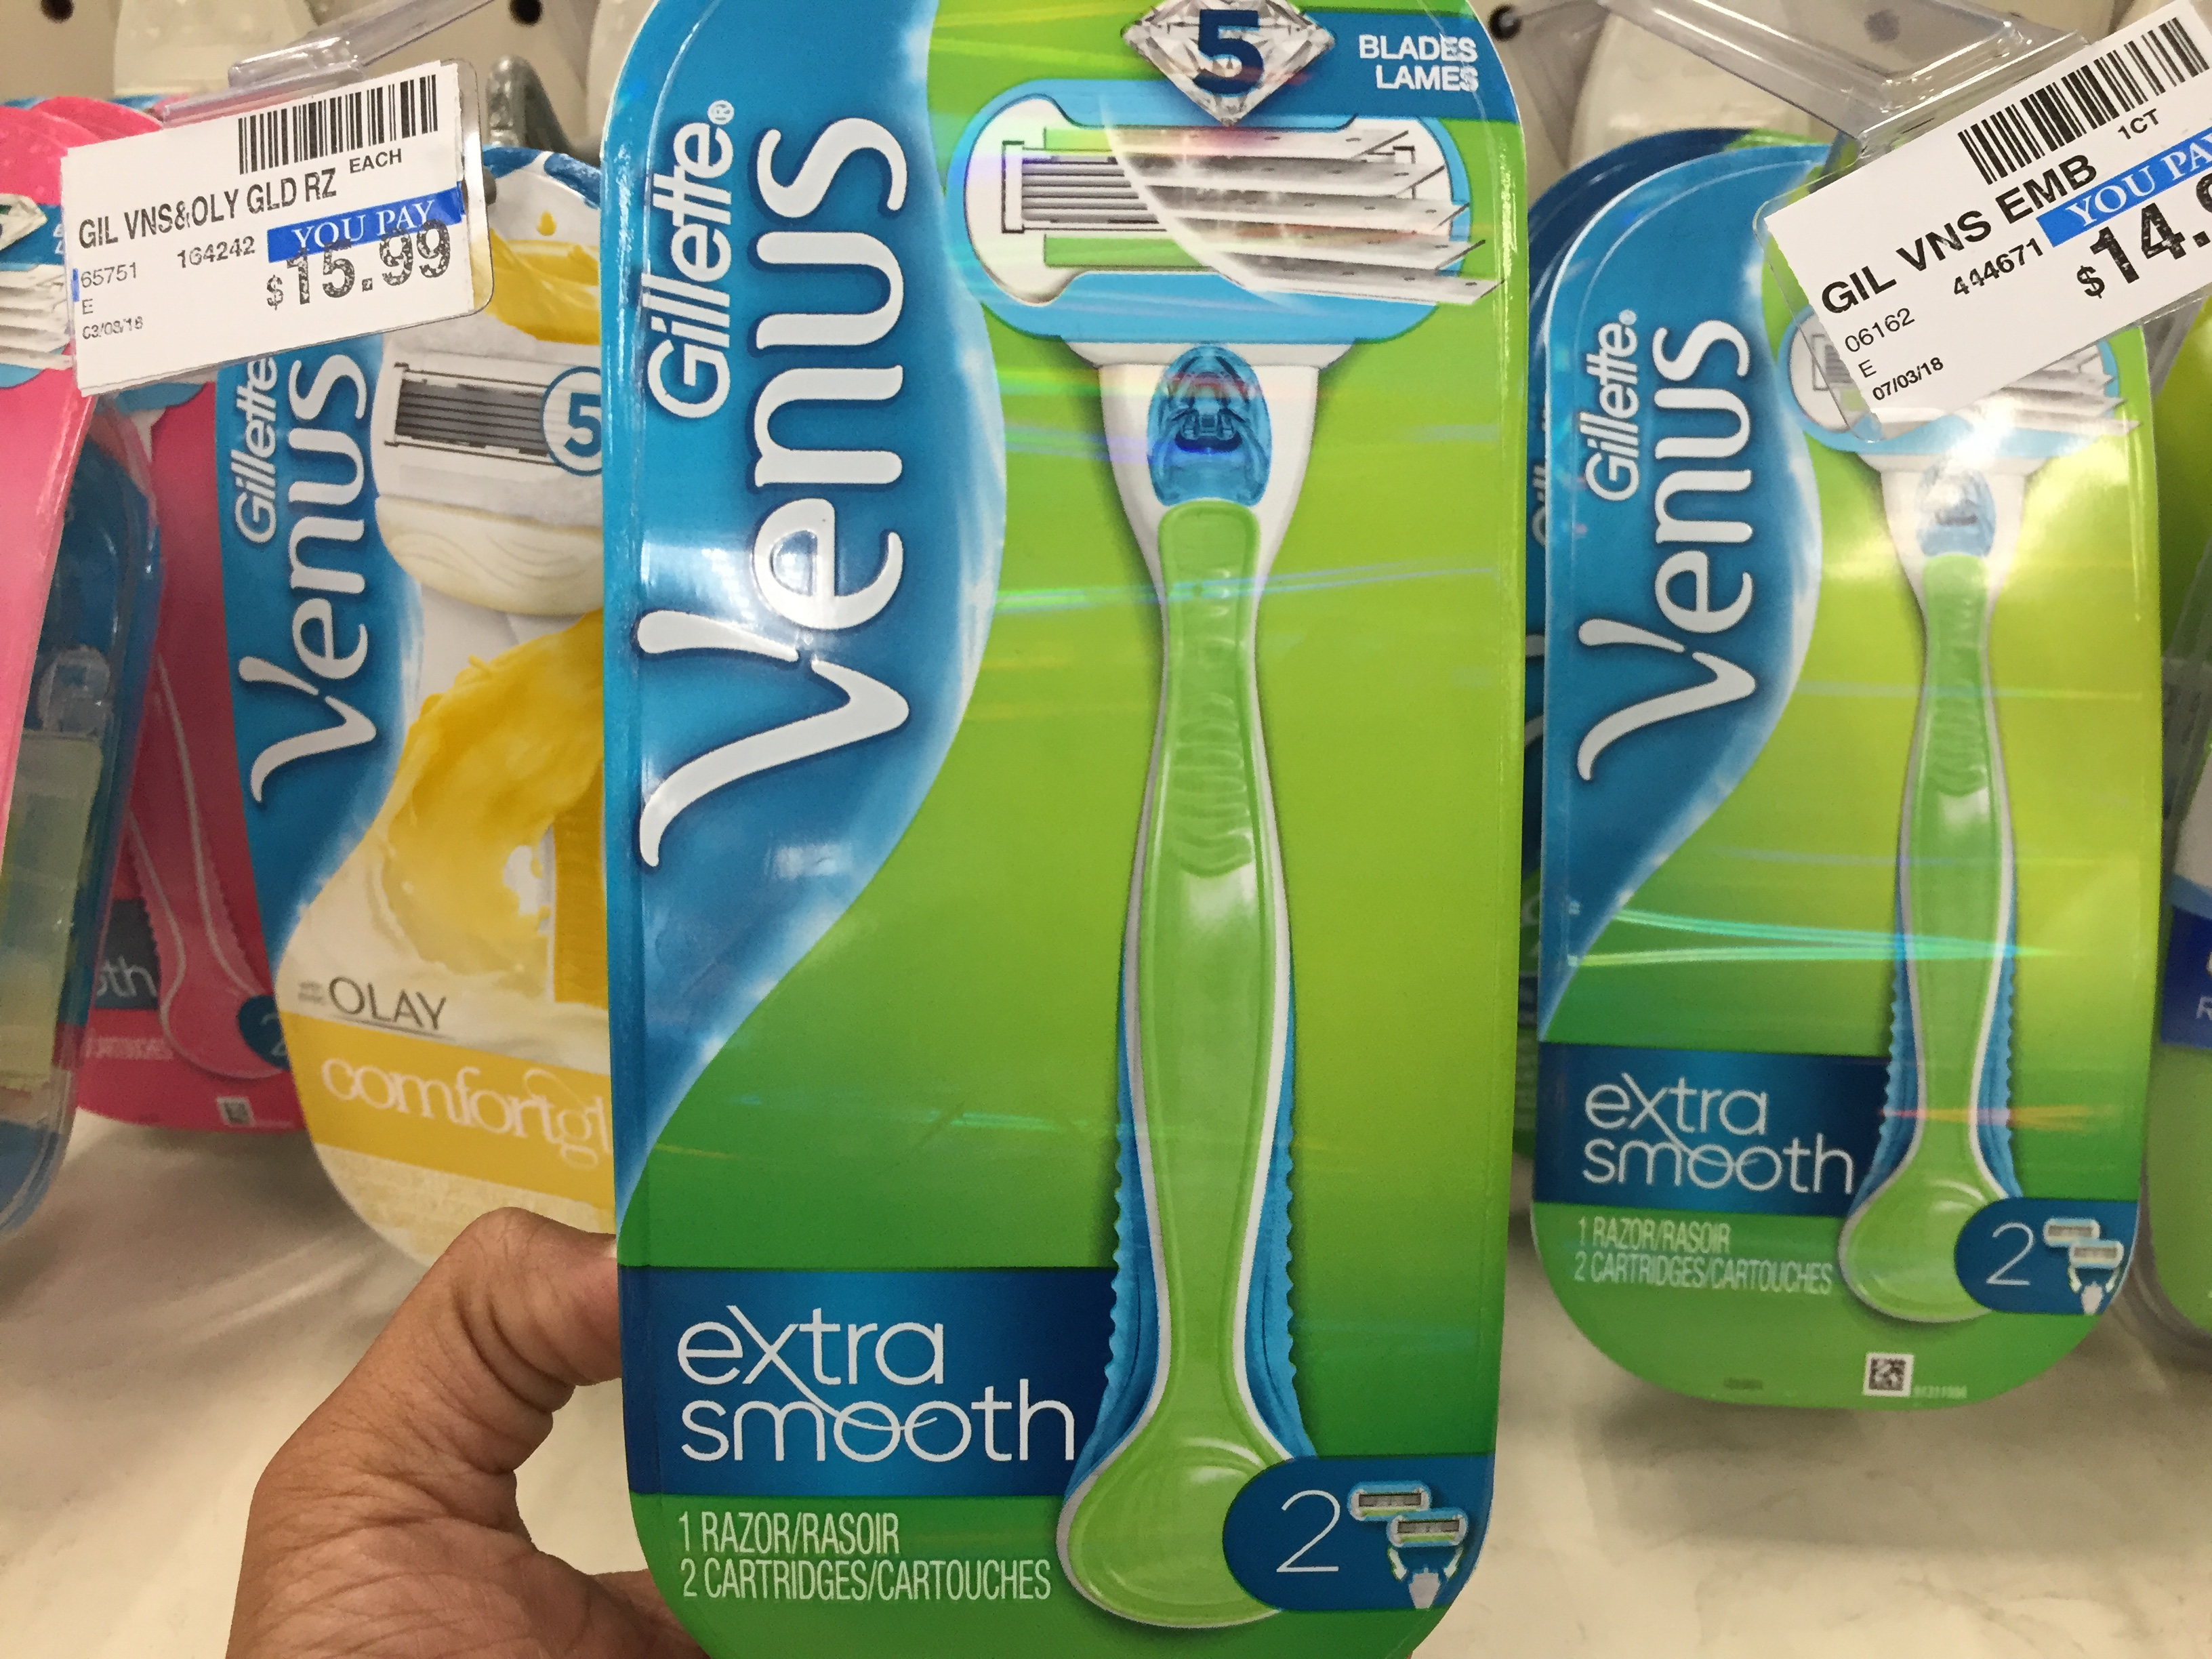 graphic about Venus Razors Printable Coupons titled Gillette Venus Razors, just $2.99 at CVS, finishes 4/13